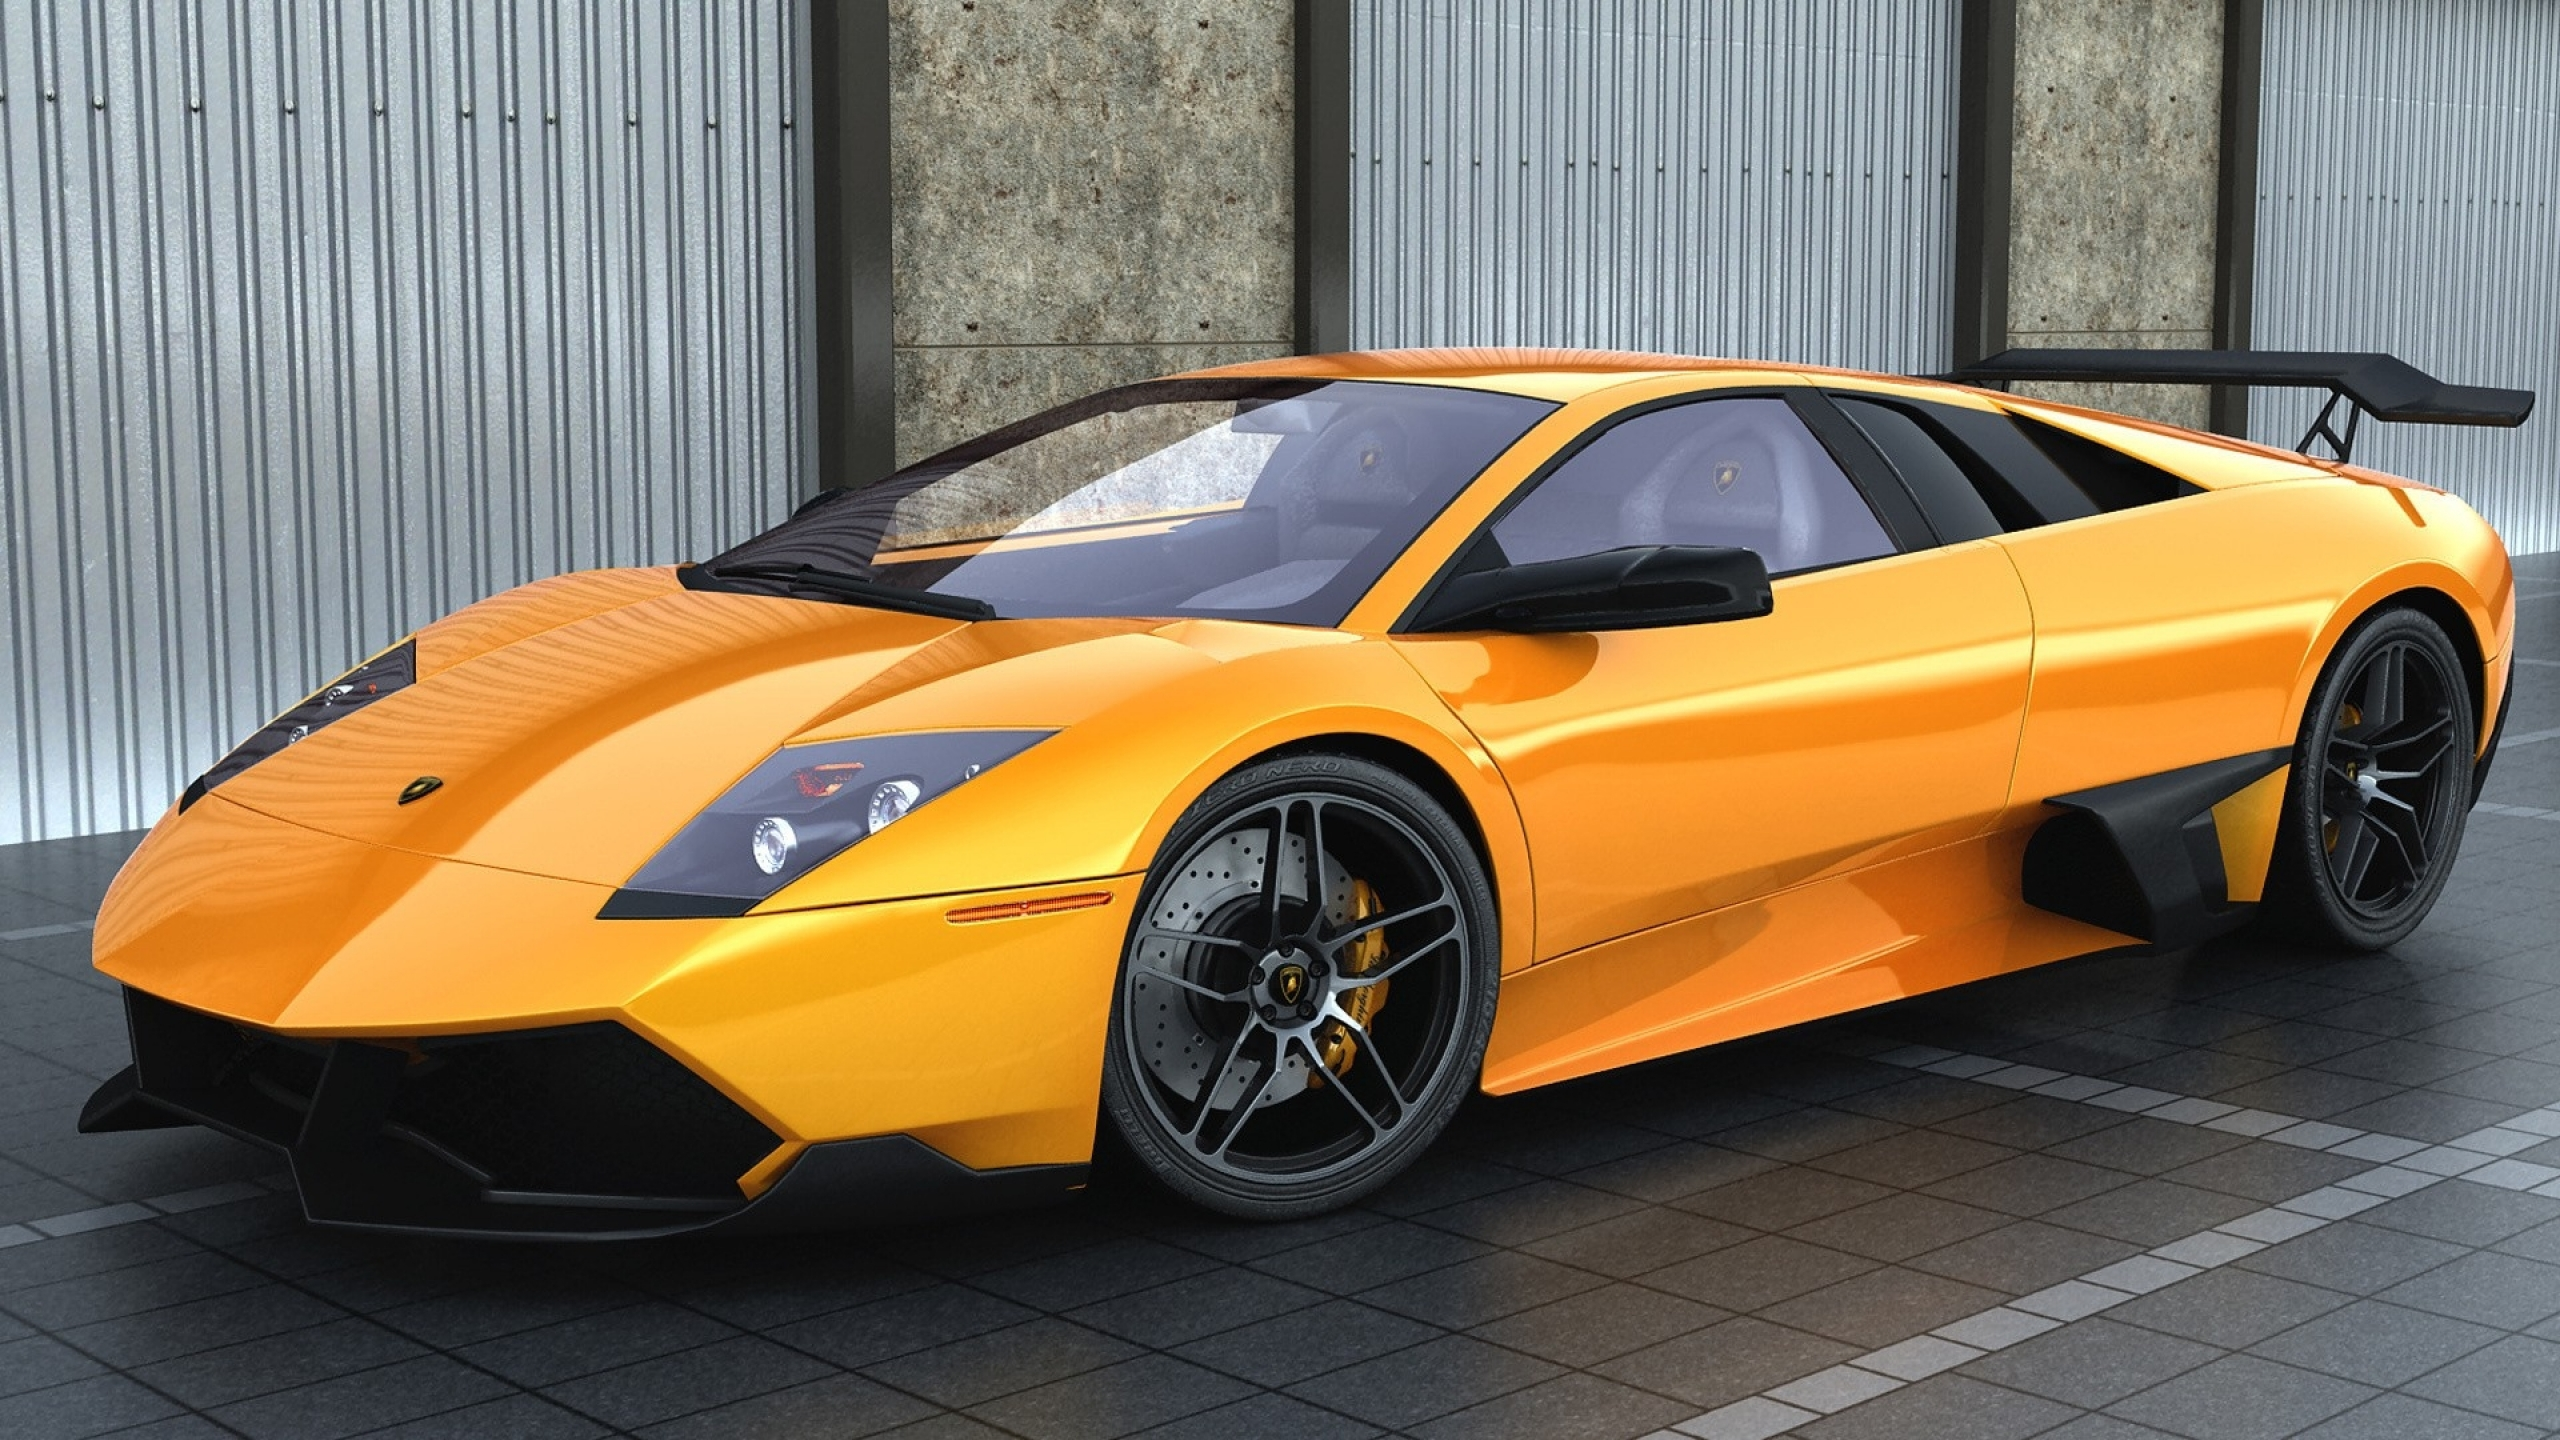 Lamborghini Murcielago Wallpapers Images Photos Pictures